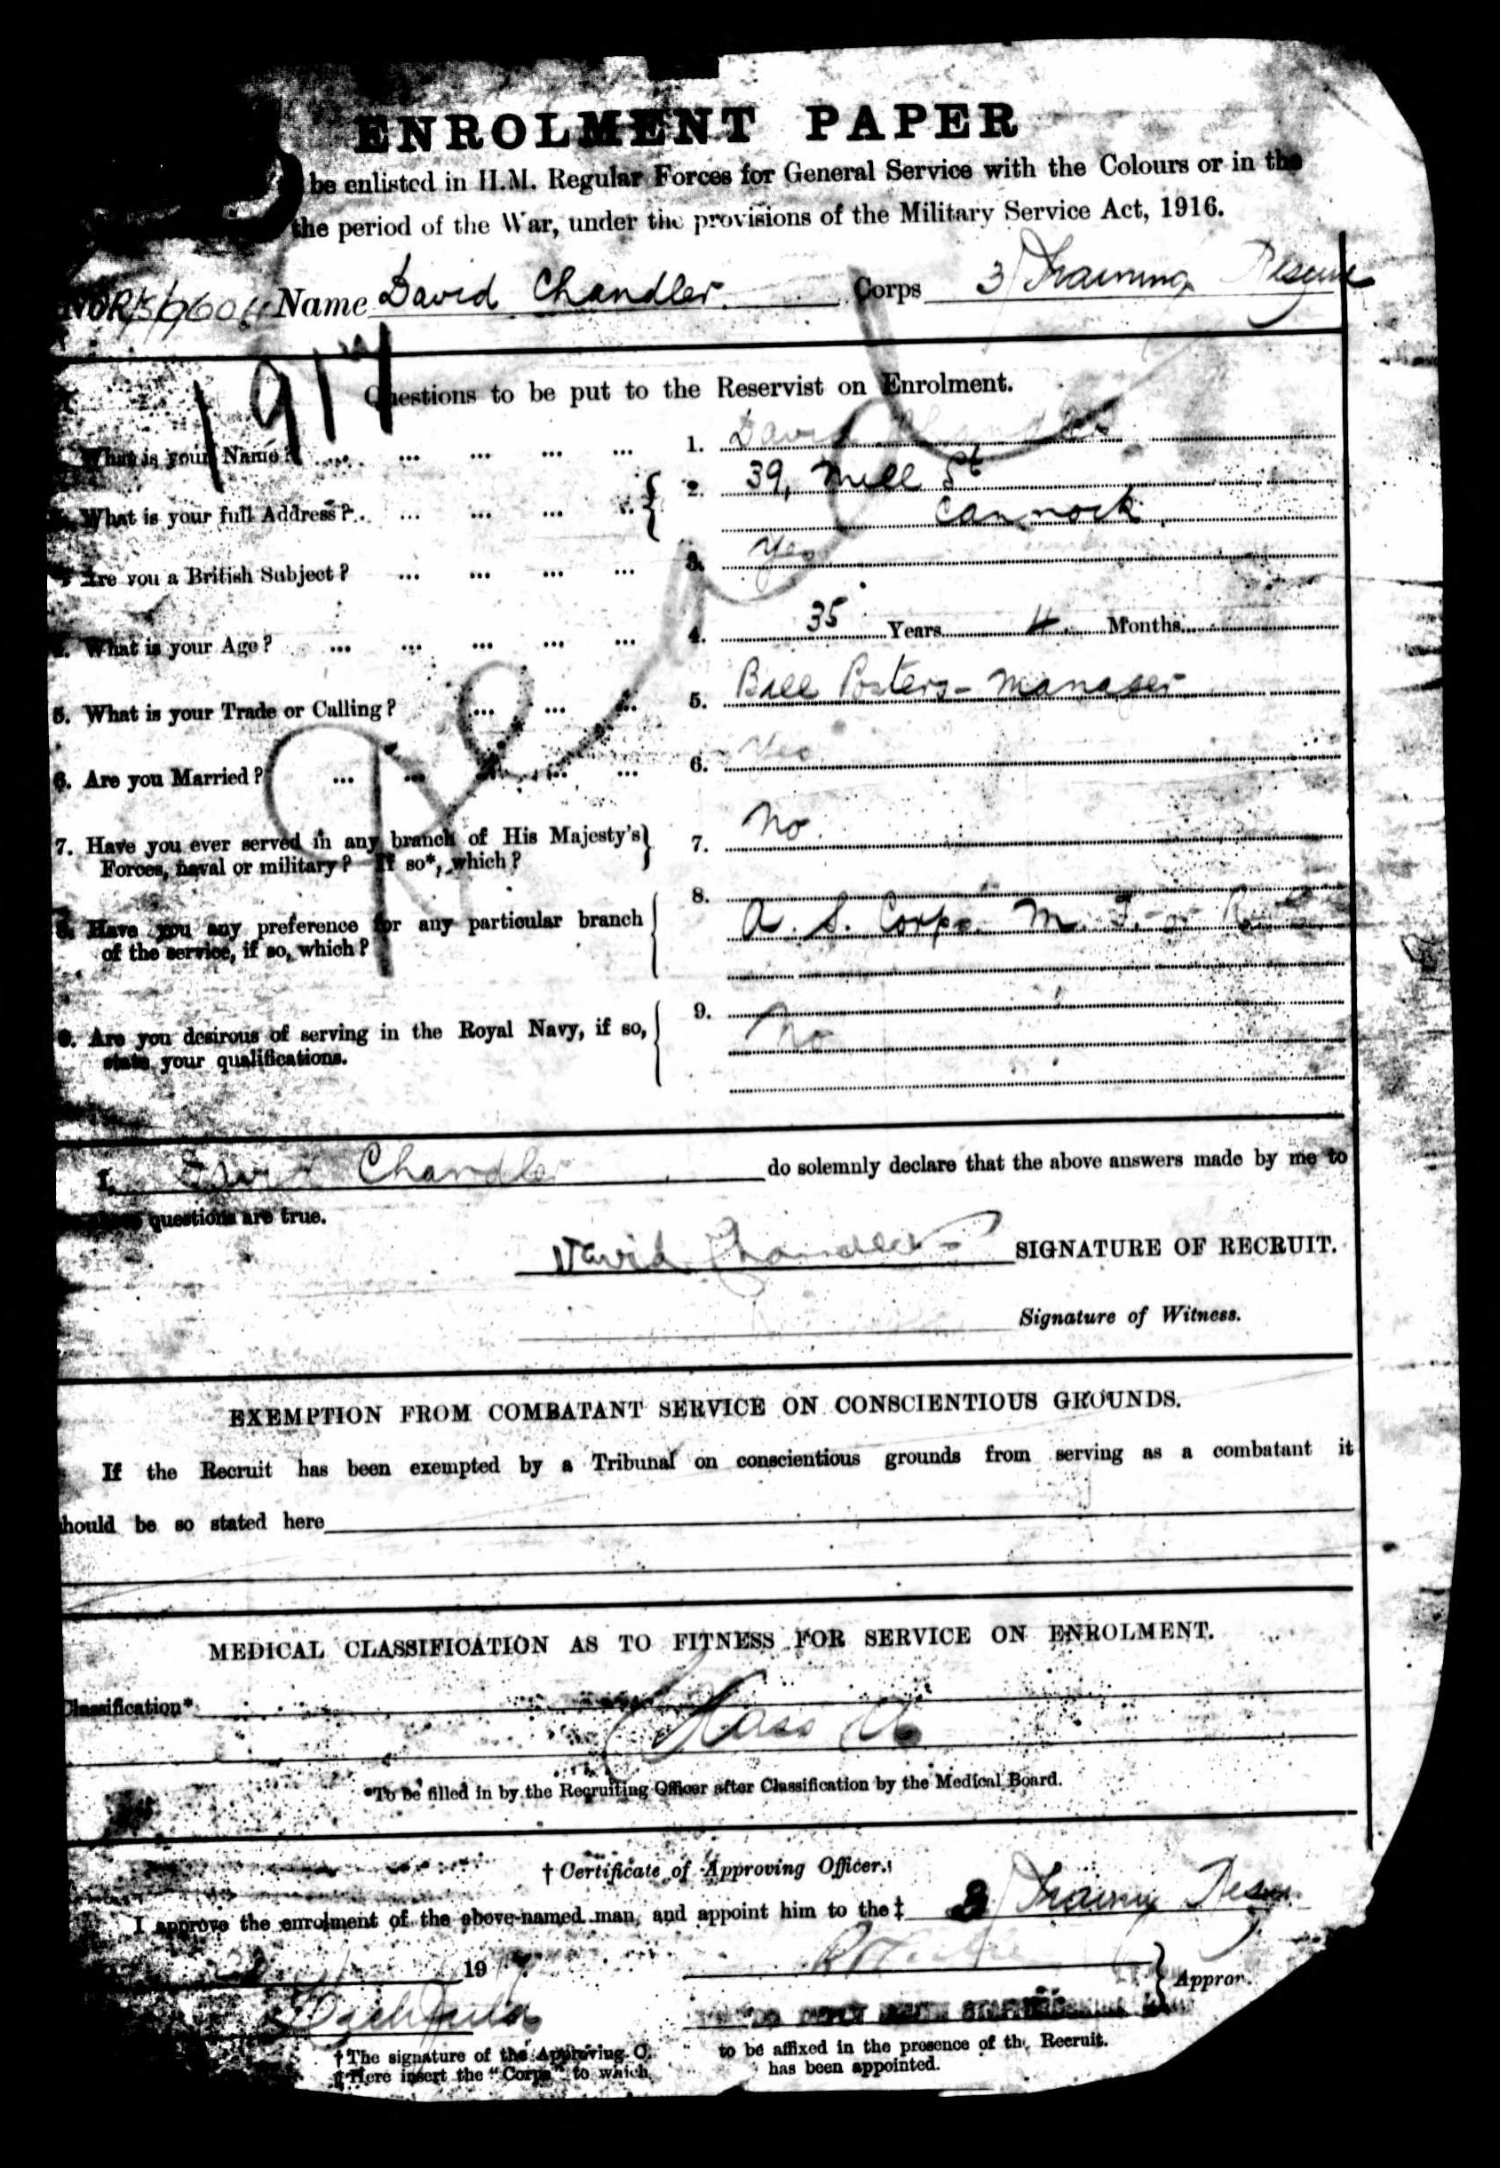 First page of David Chandler's attestation papers